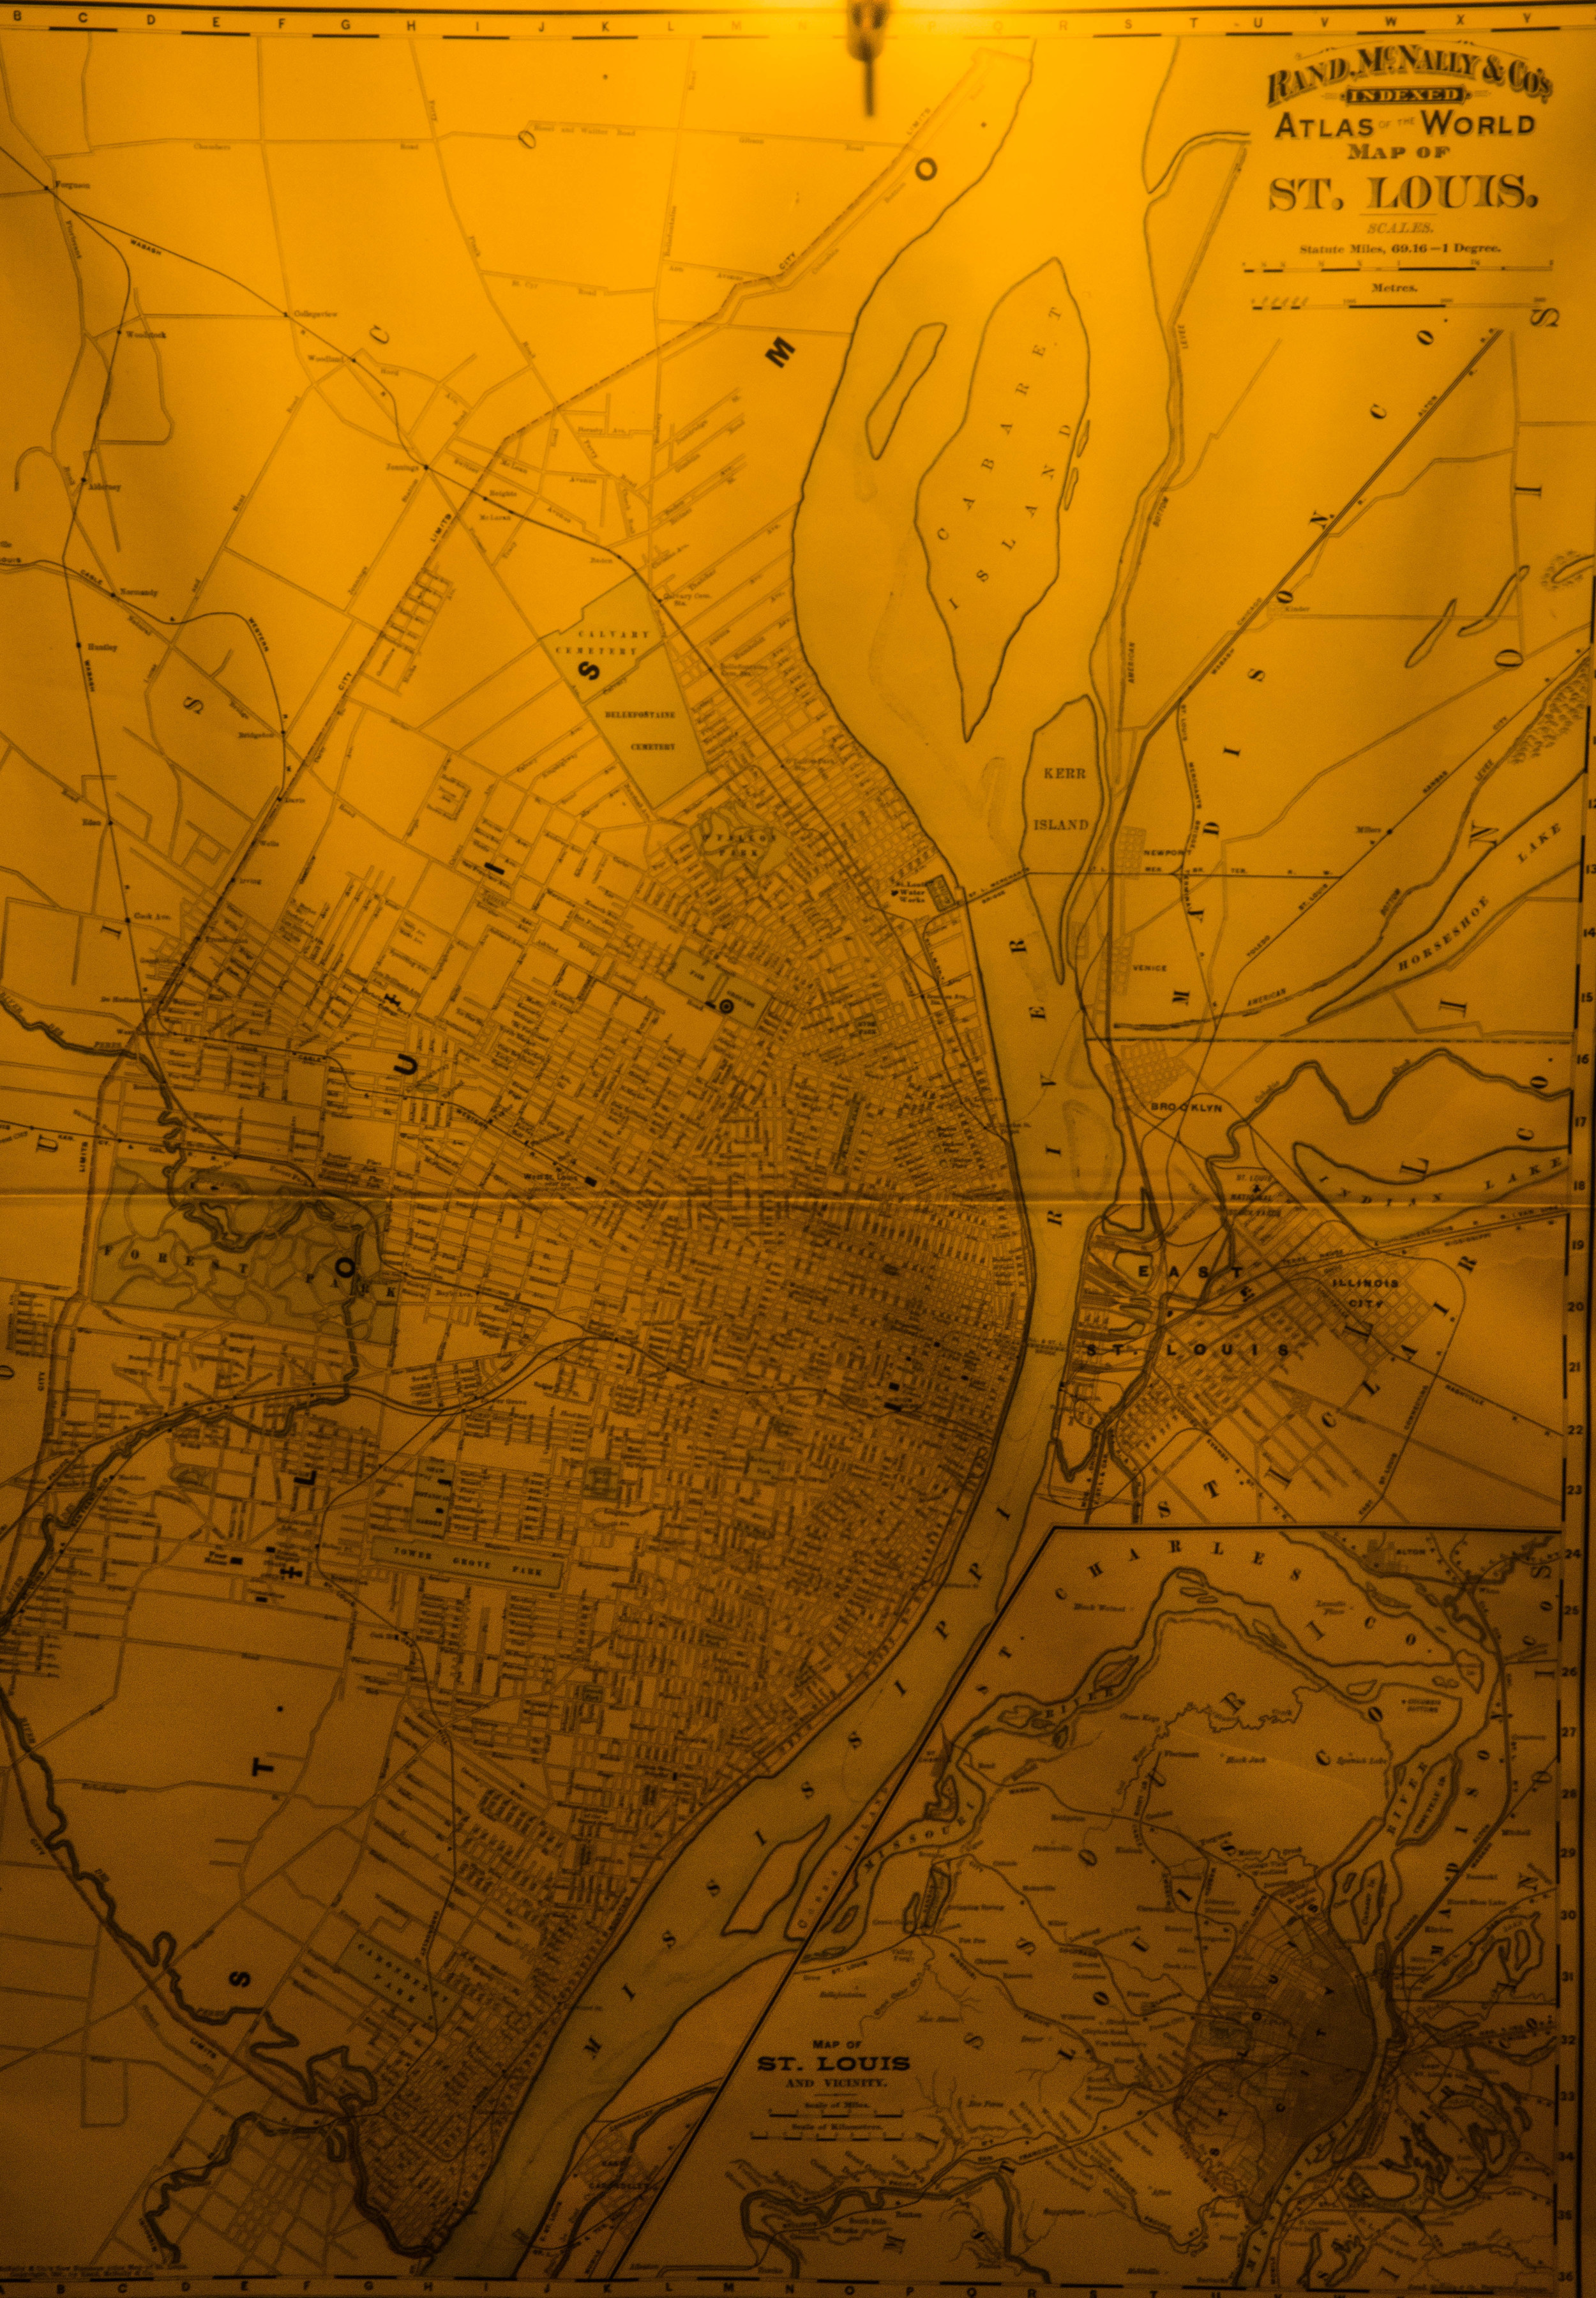 I have a huge interest in maps of all kinds, especially maps which are older and have a interesting history behind them.